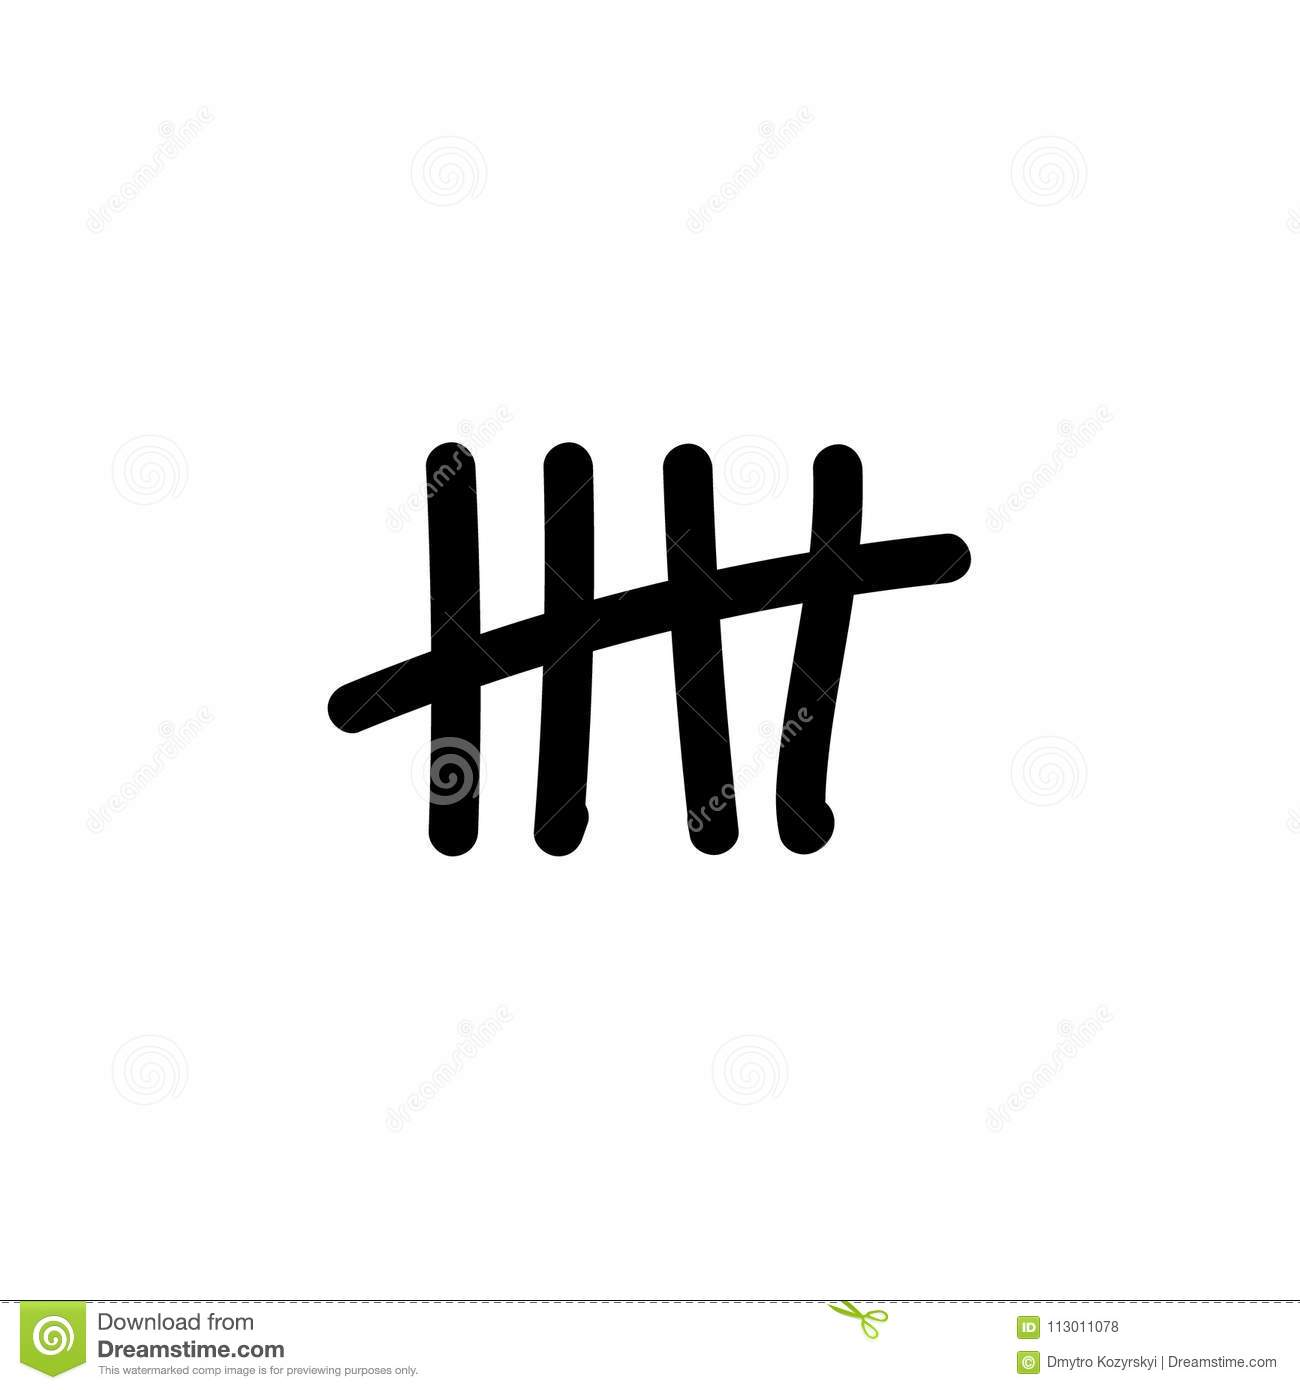 Tally Marks Count Flat Design Vector Illustration On